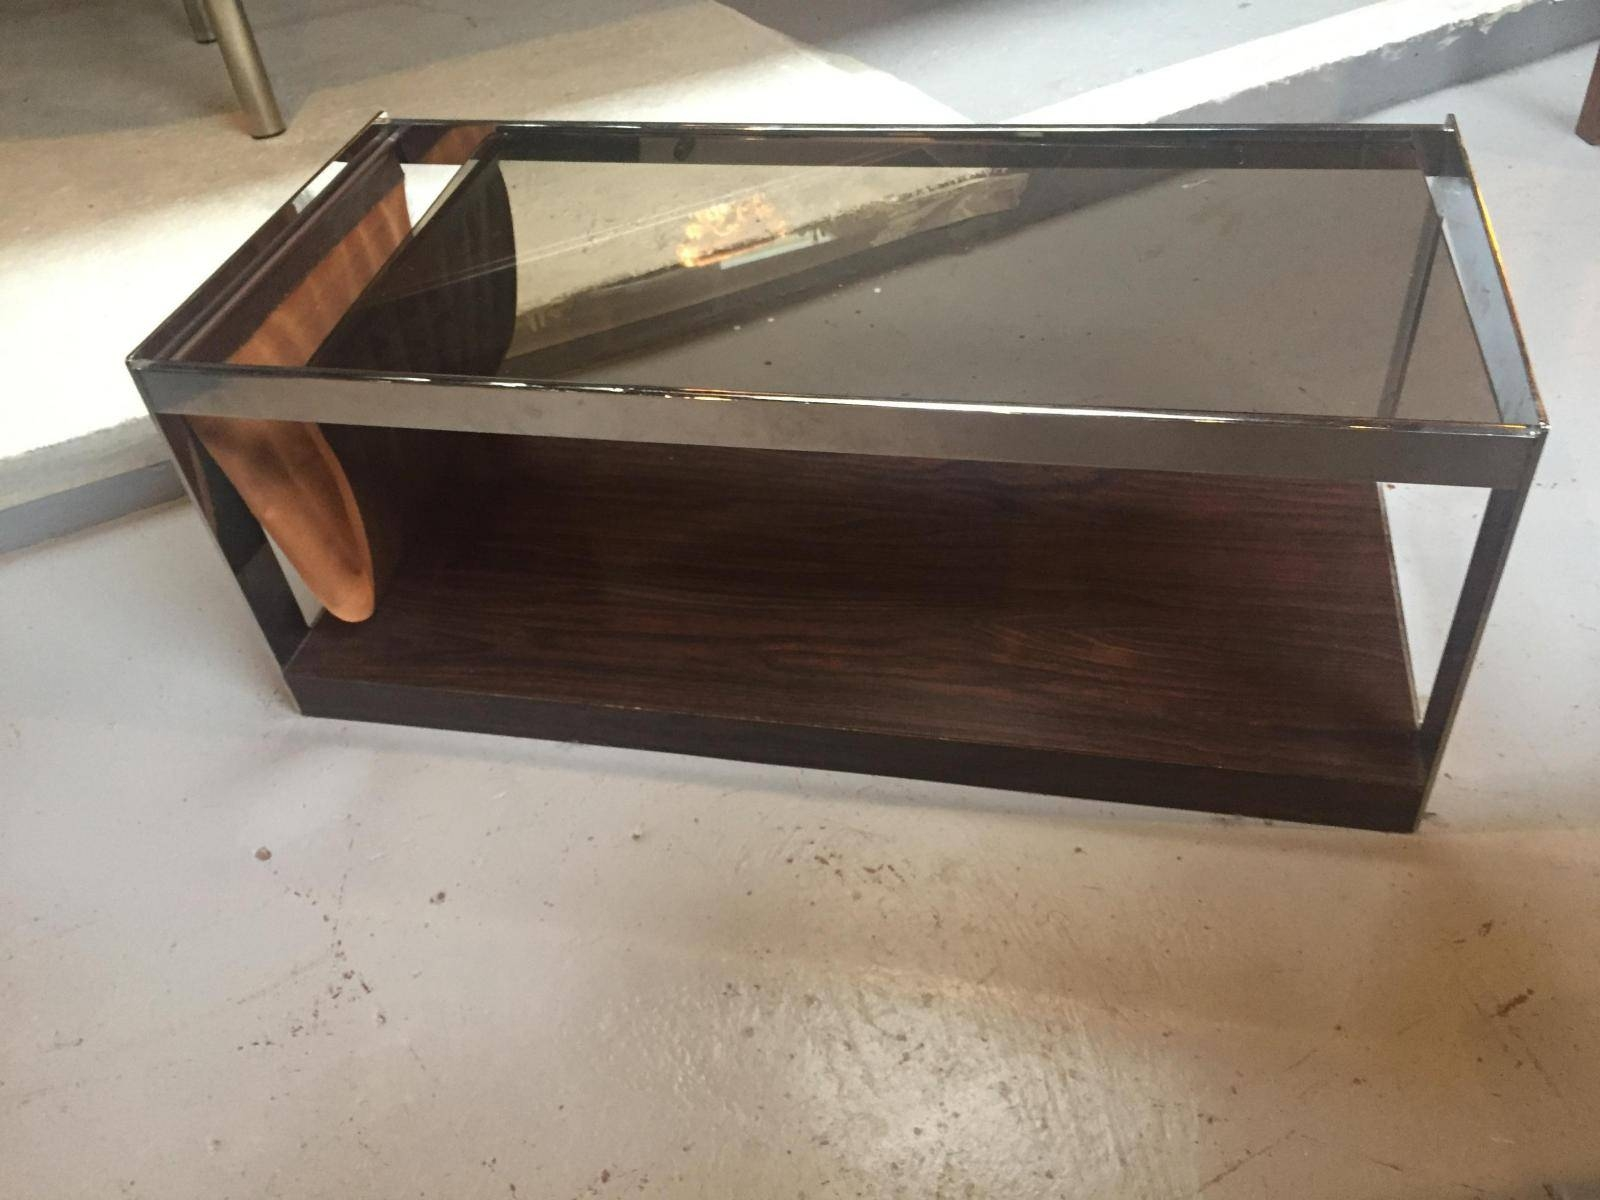 Vintage Italian Smoked Glass Coffee Table For Sale At Pamono Regarding Retro Smoked Glass Coffee Tables (View 10 of 30)